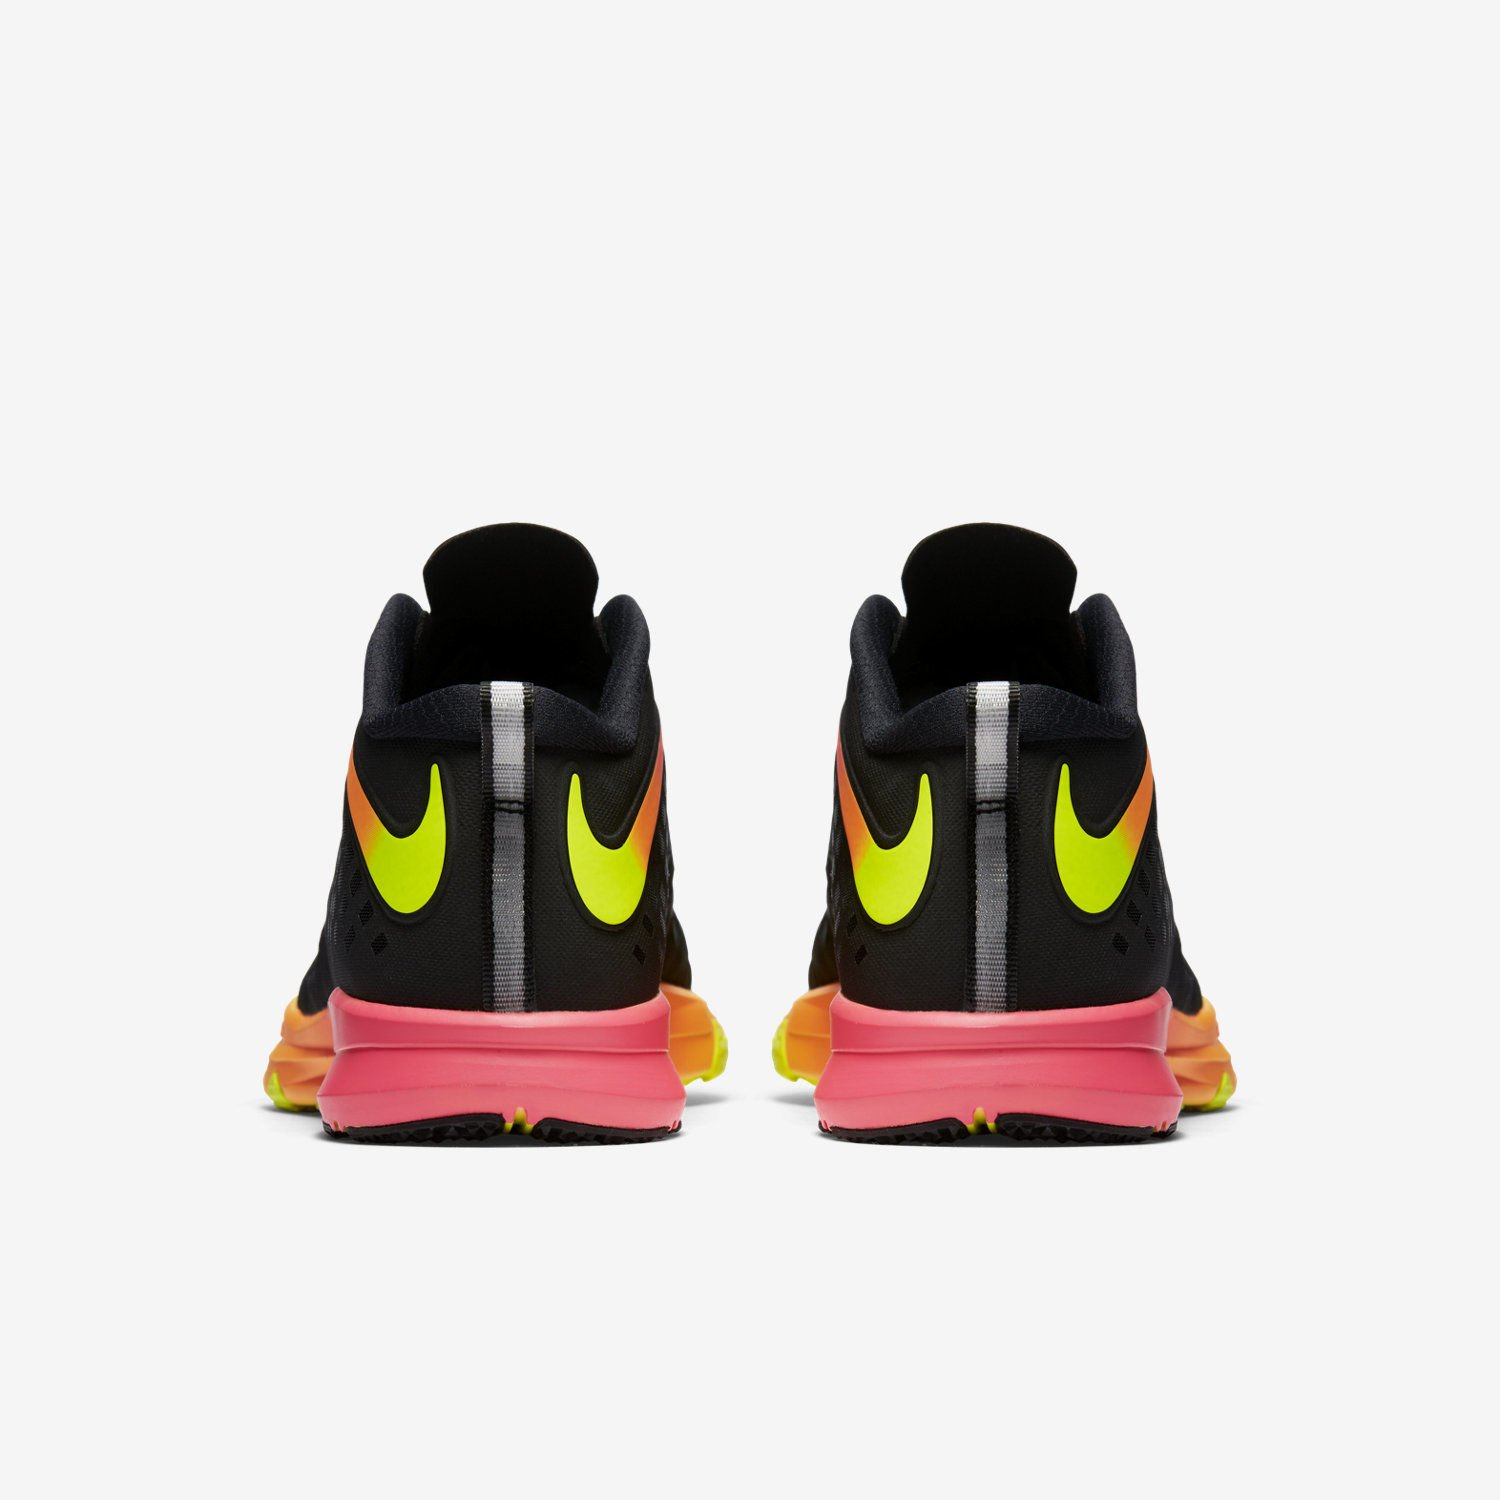 Buty treningowe Nike Train Quick 844406 999